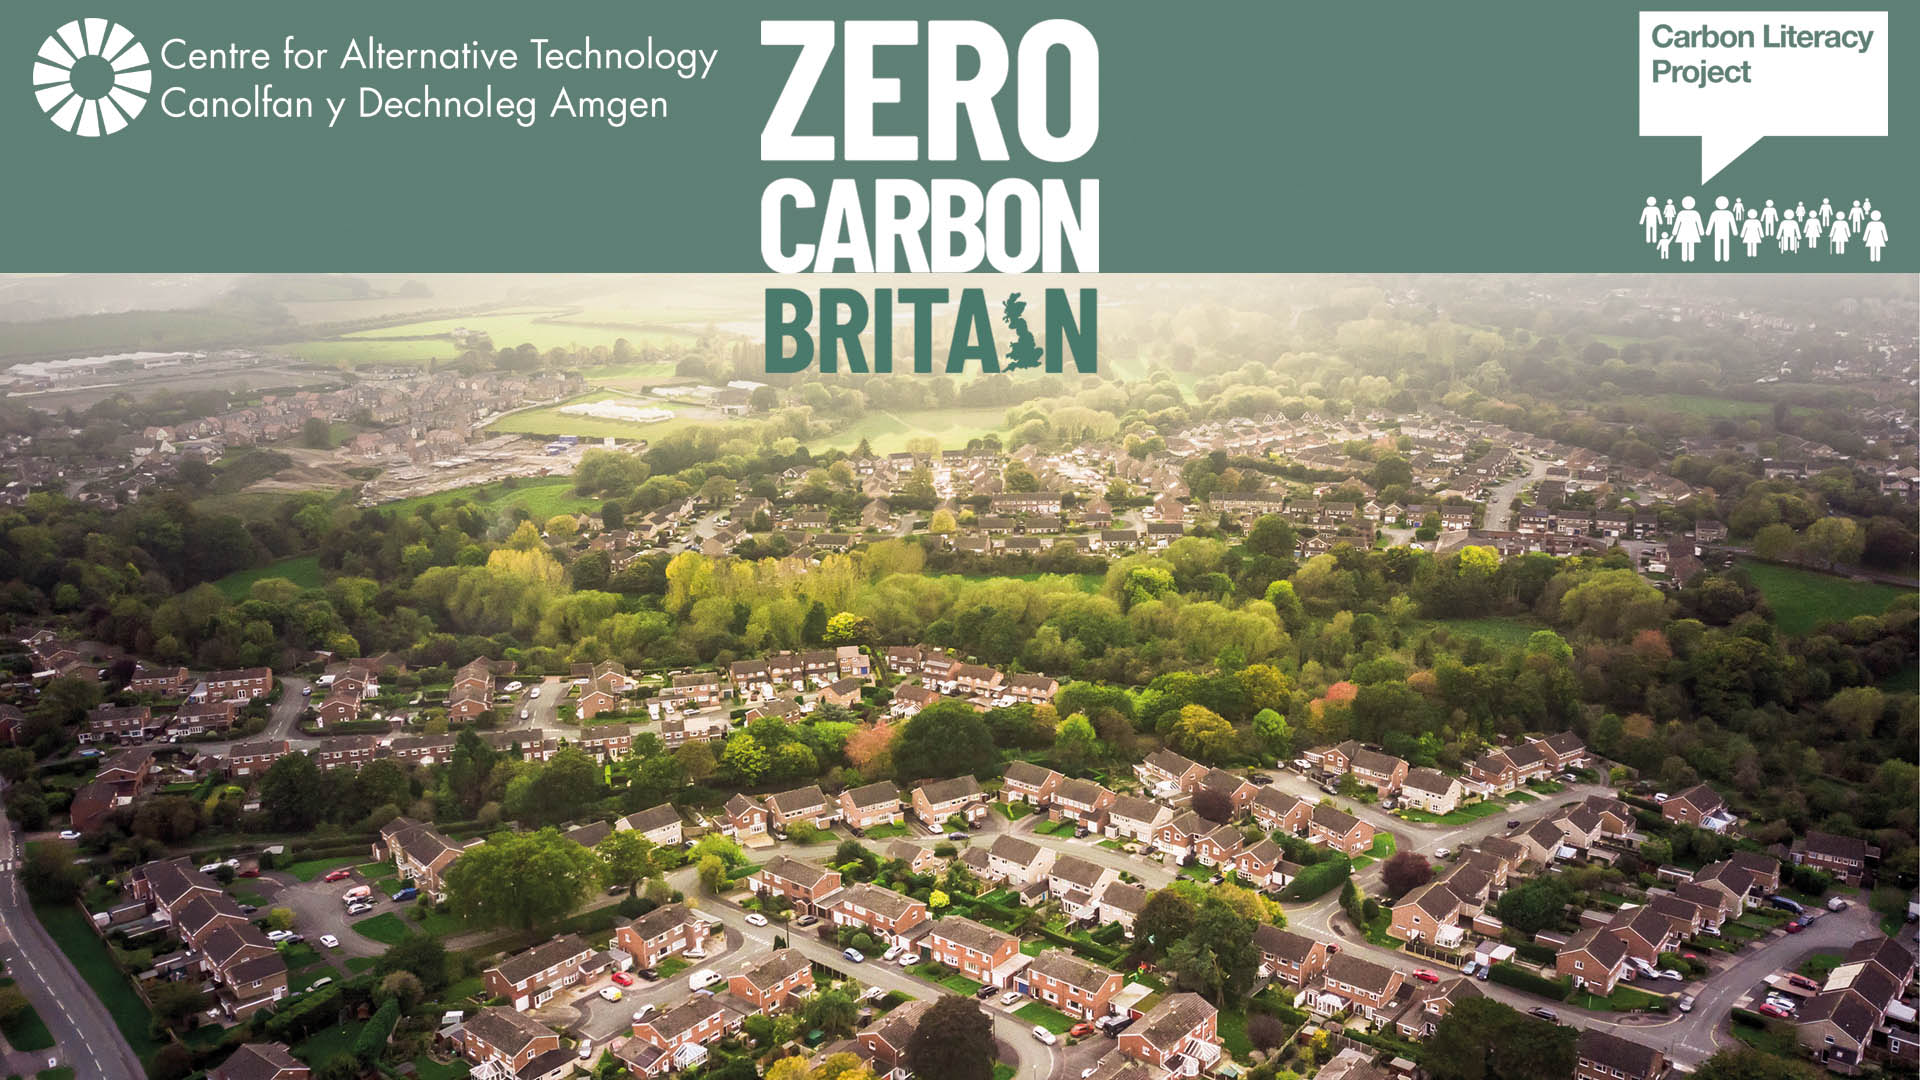 Aerial view of a town with Zero Carbon Britain logo